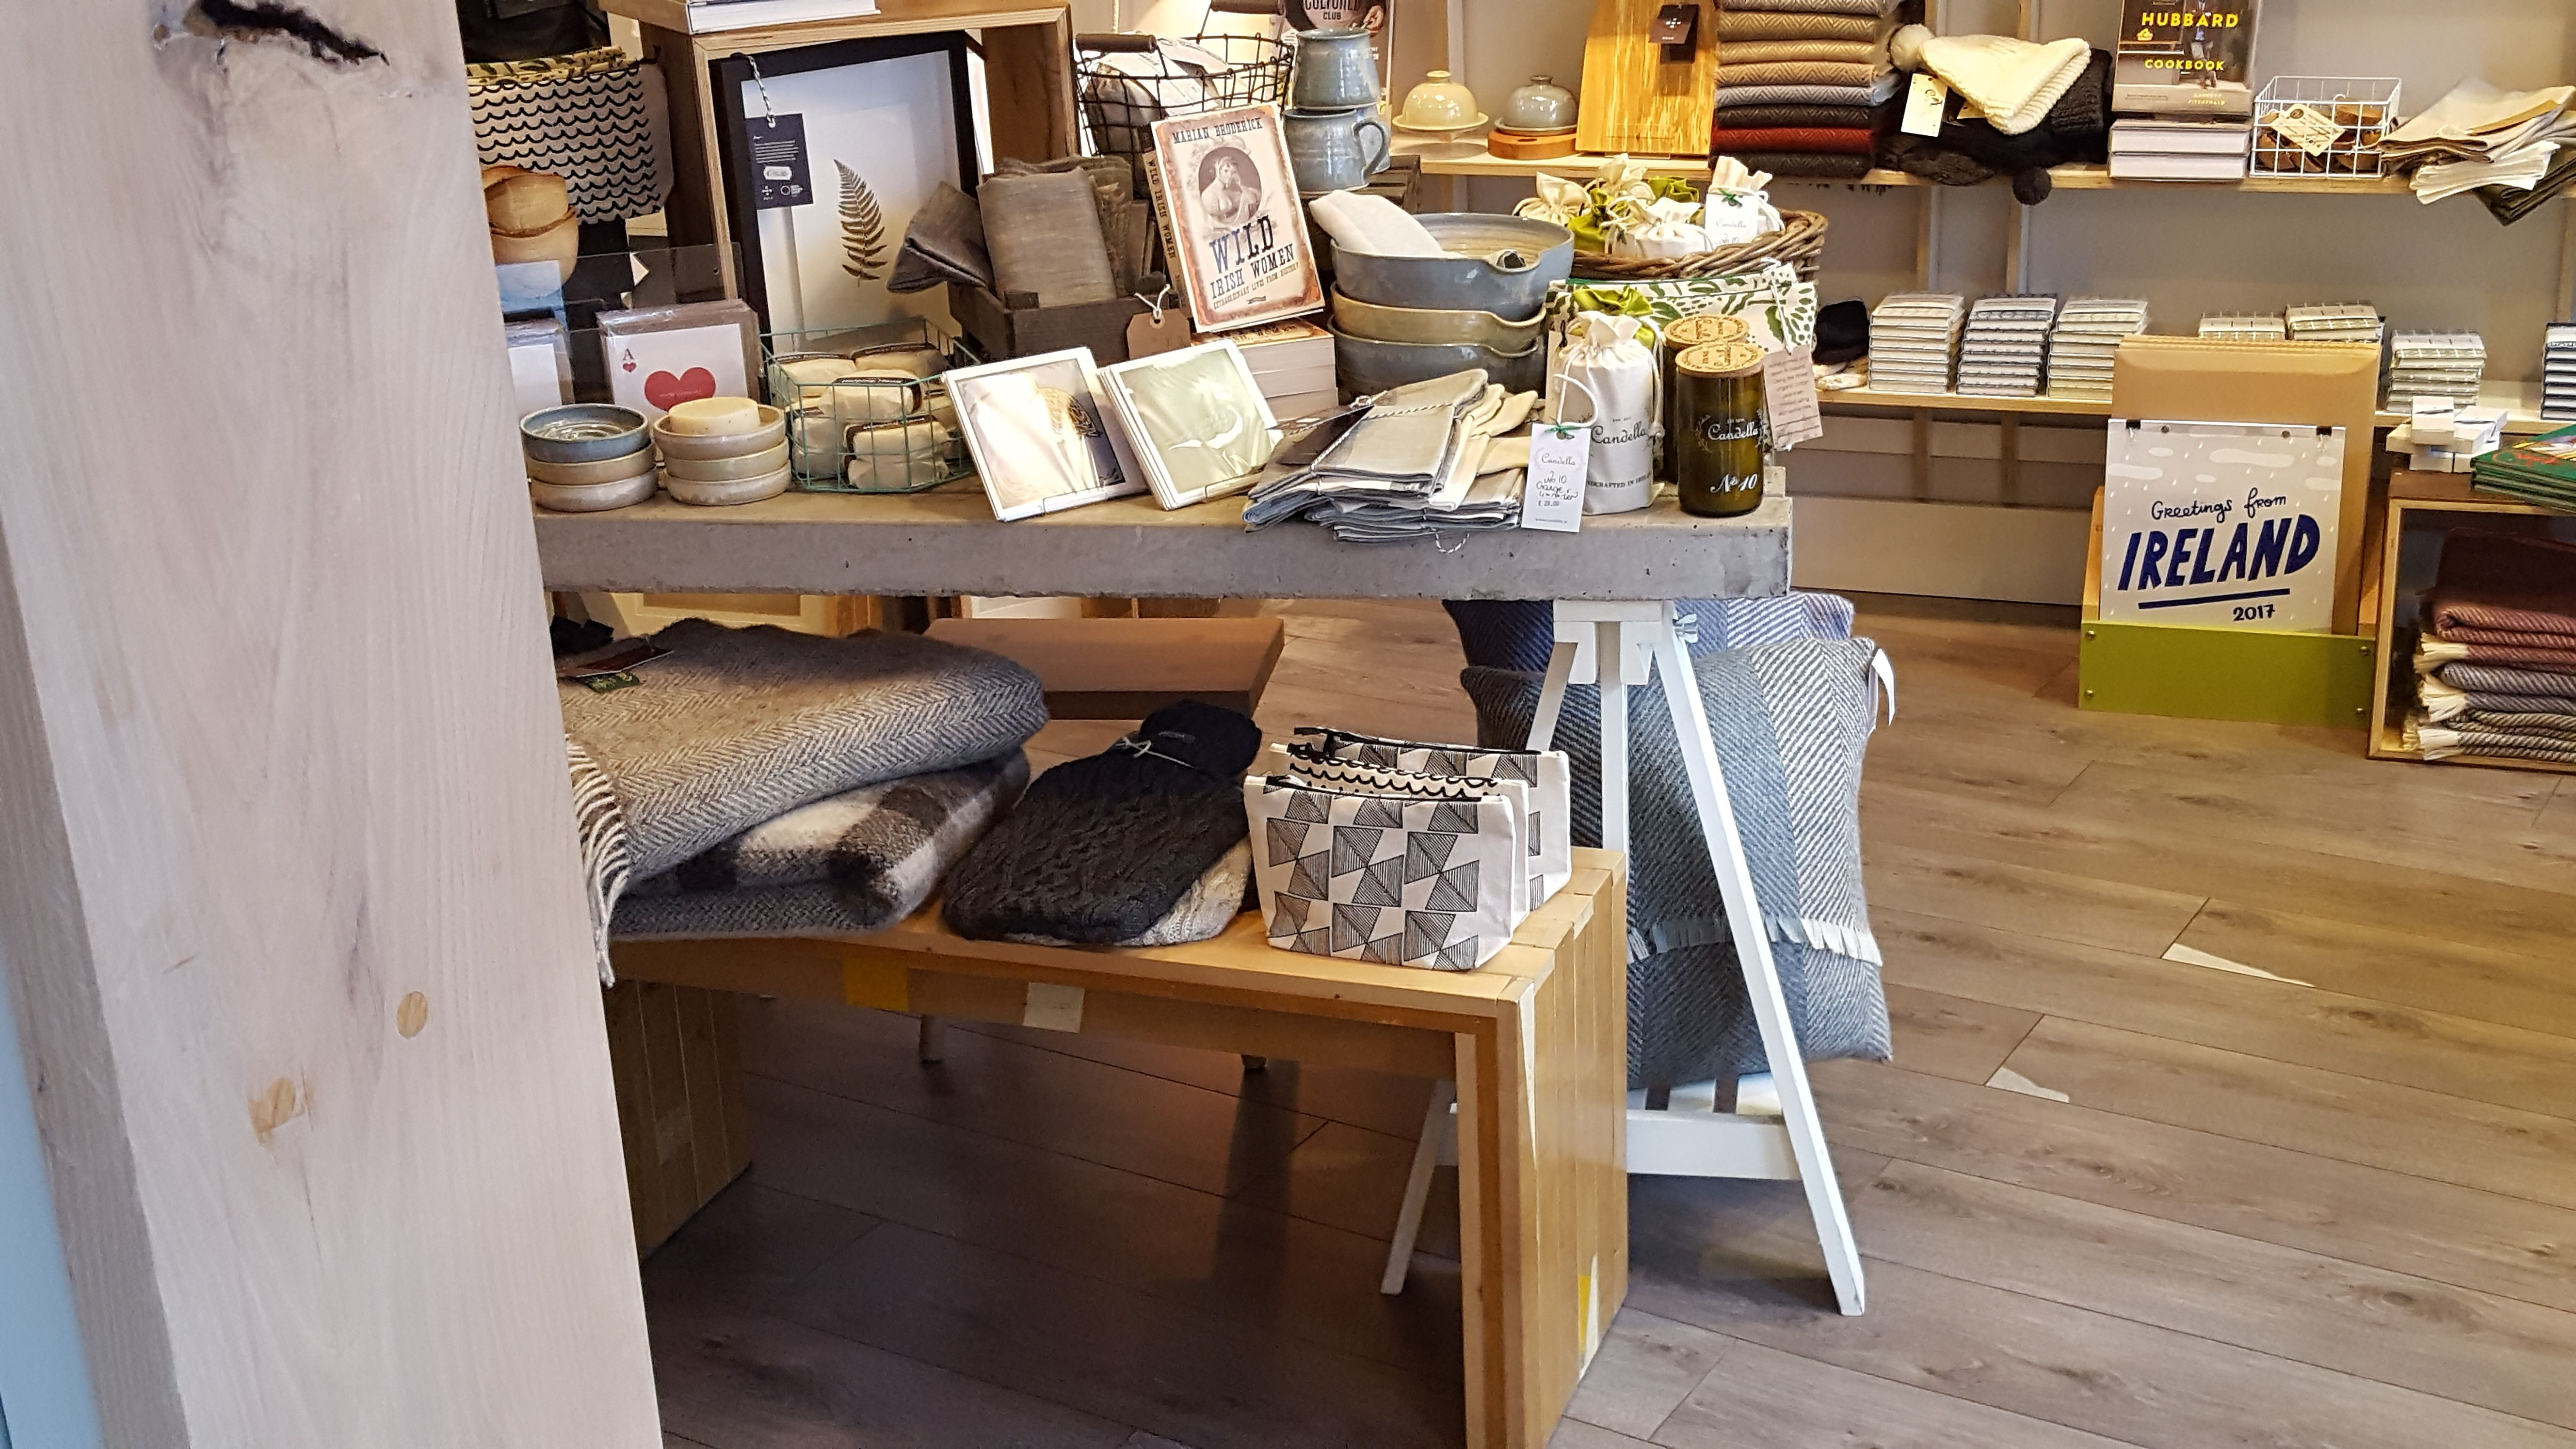 Table made from concrete lintels on IKEA trestle legs